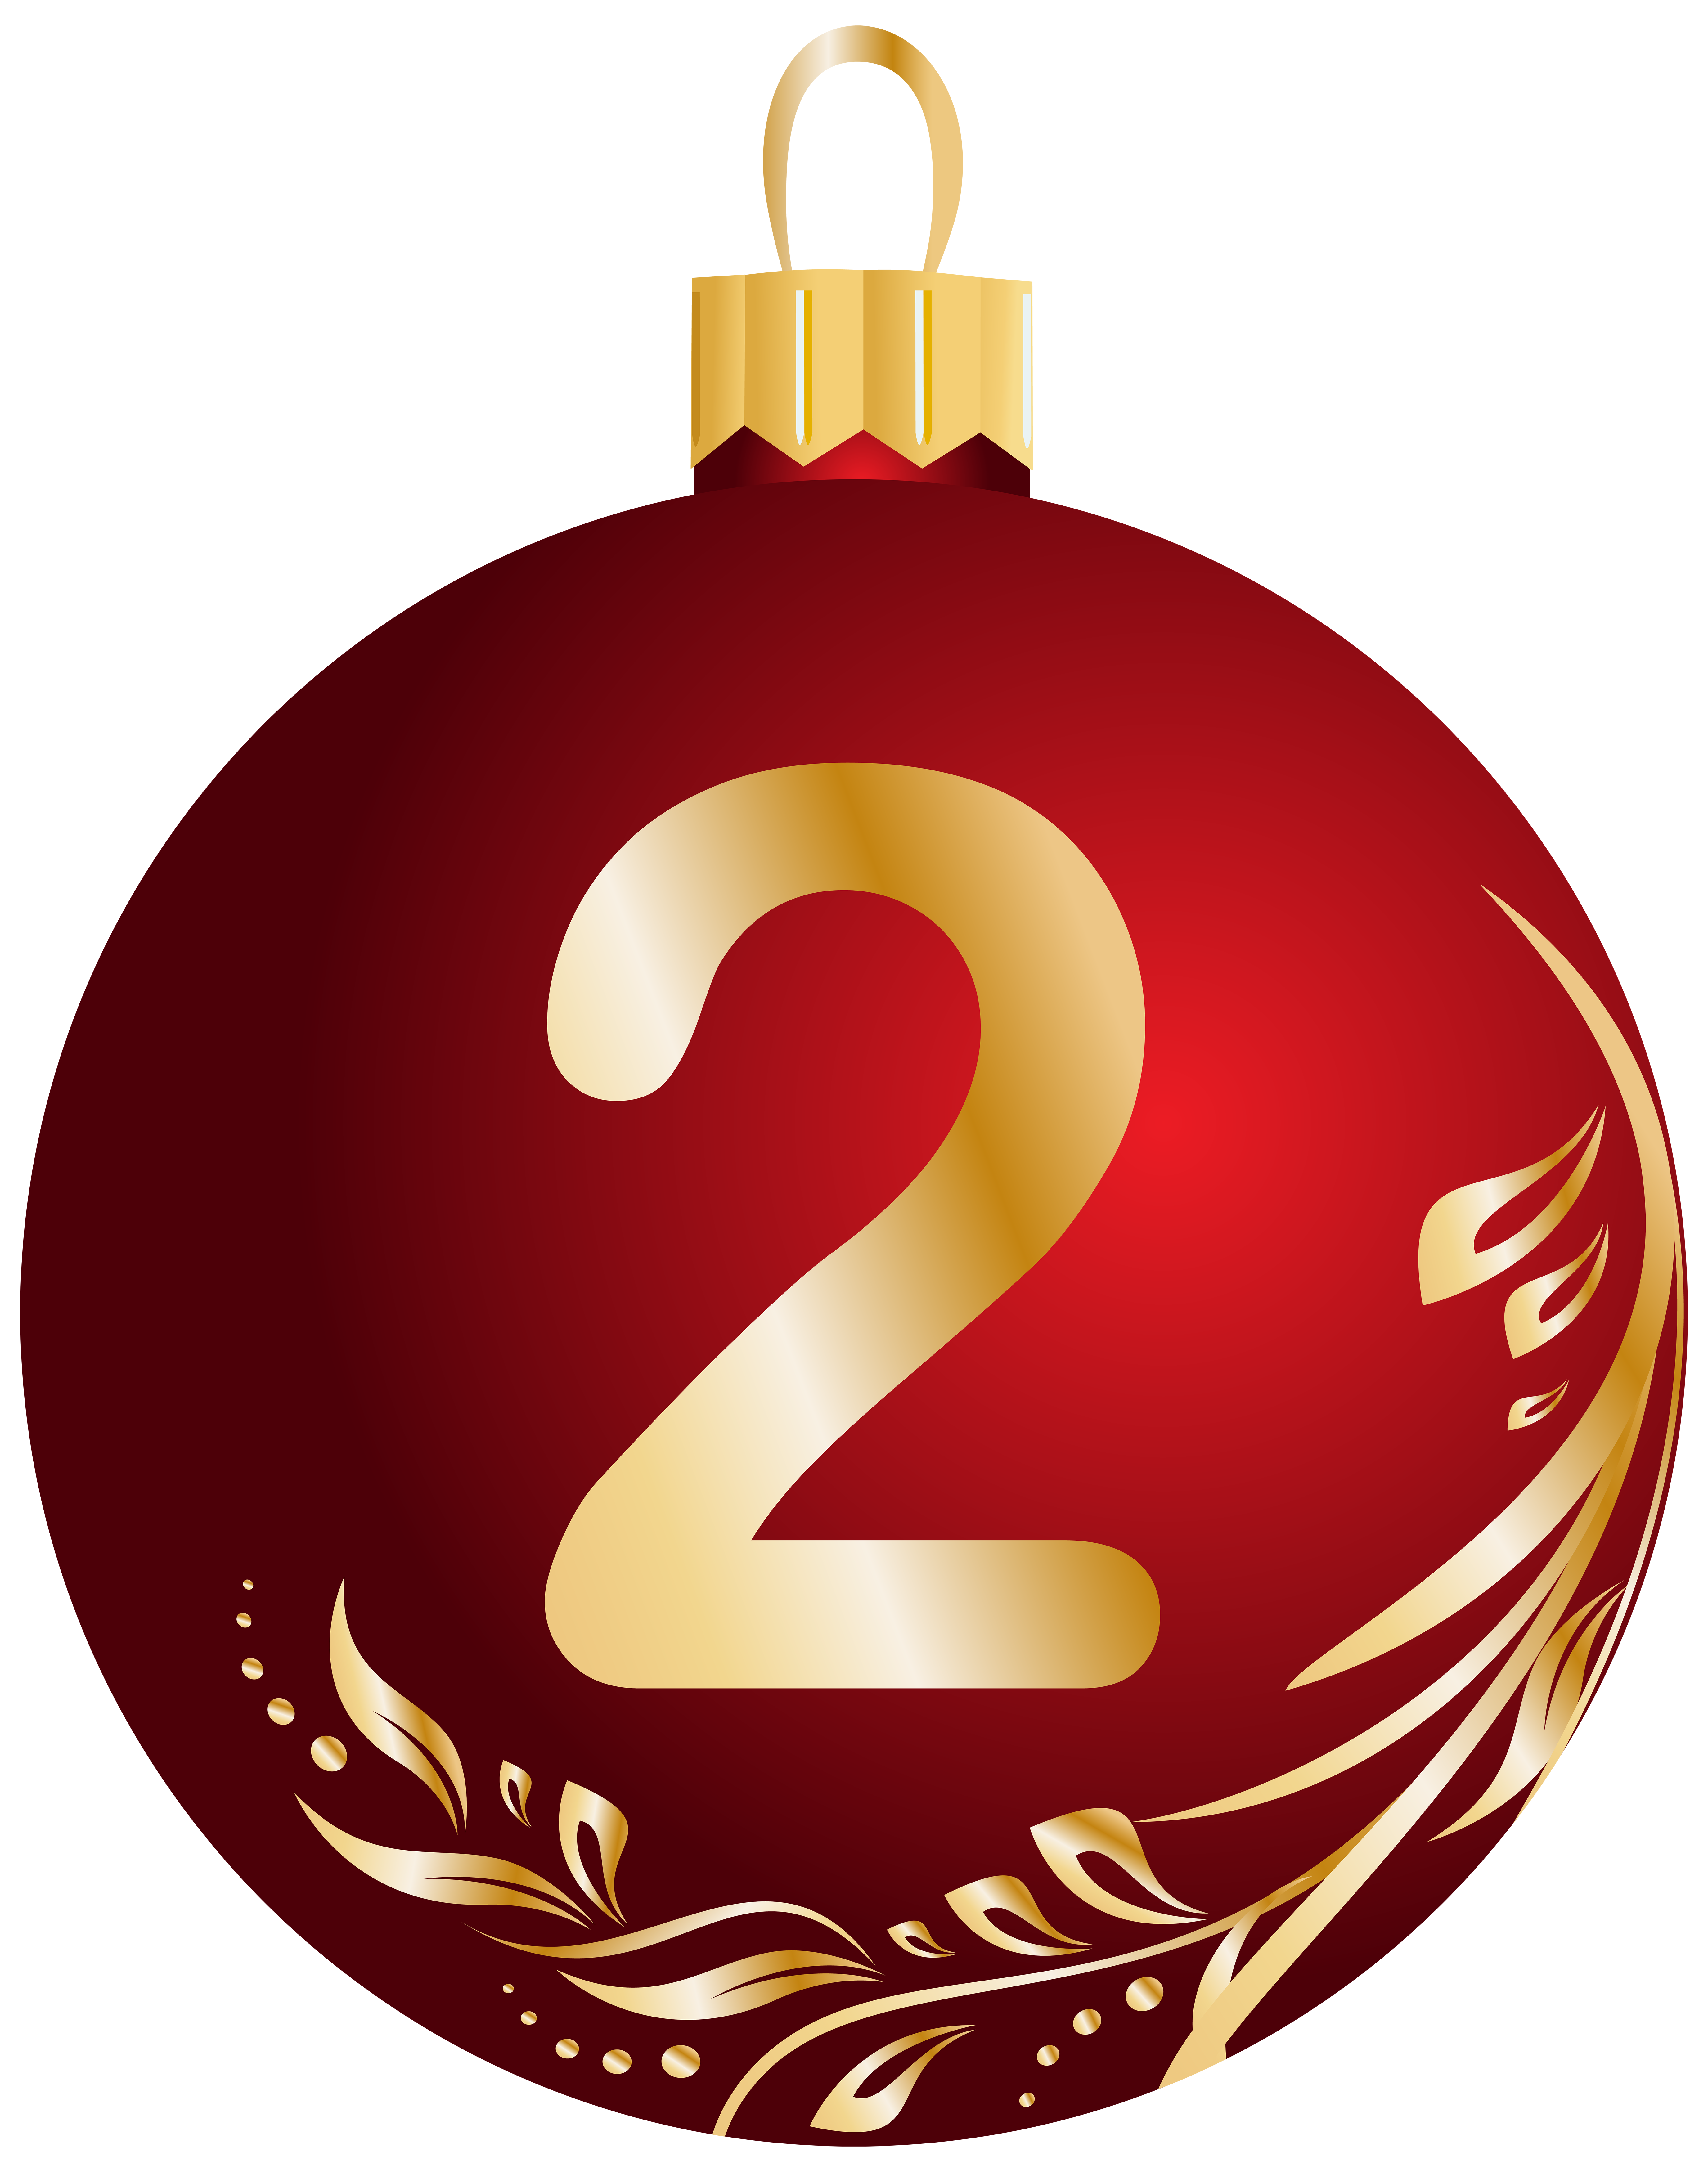 Number 6 clipart free christmas number. Hannah at getdrawings com